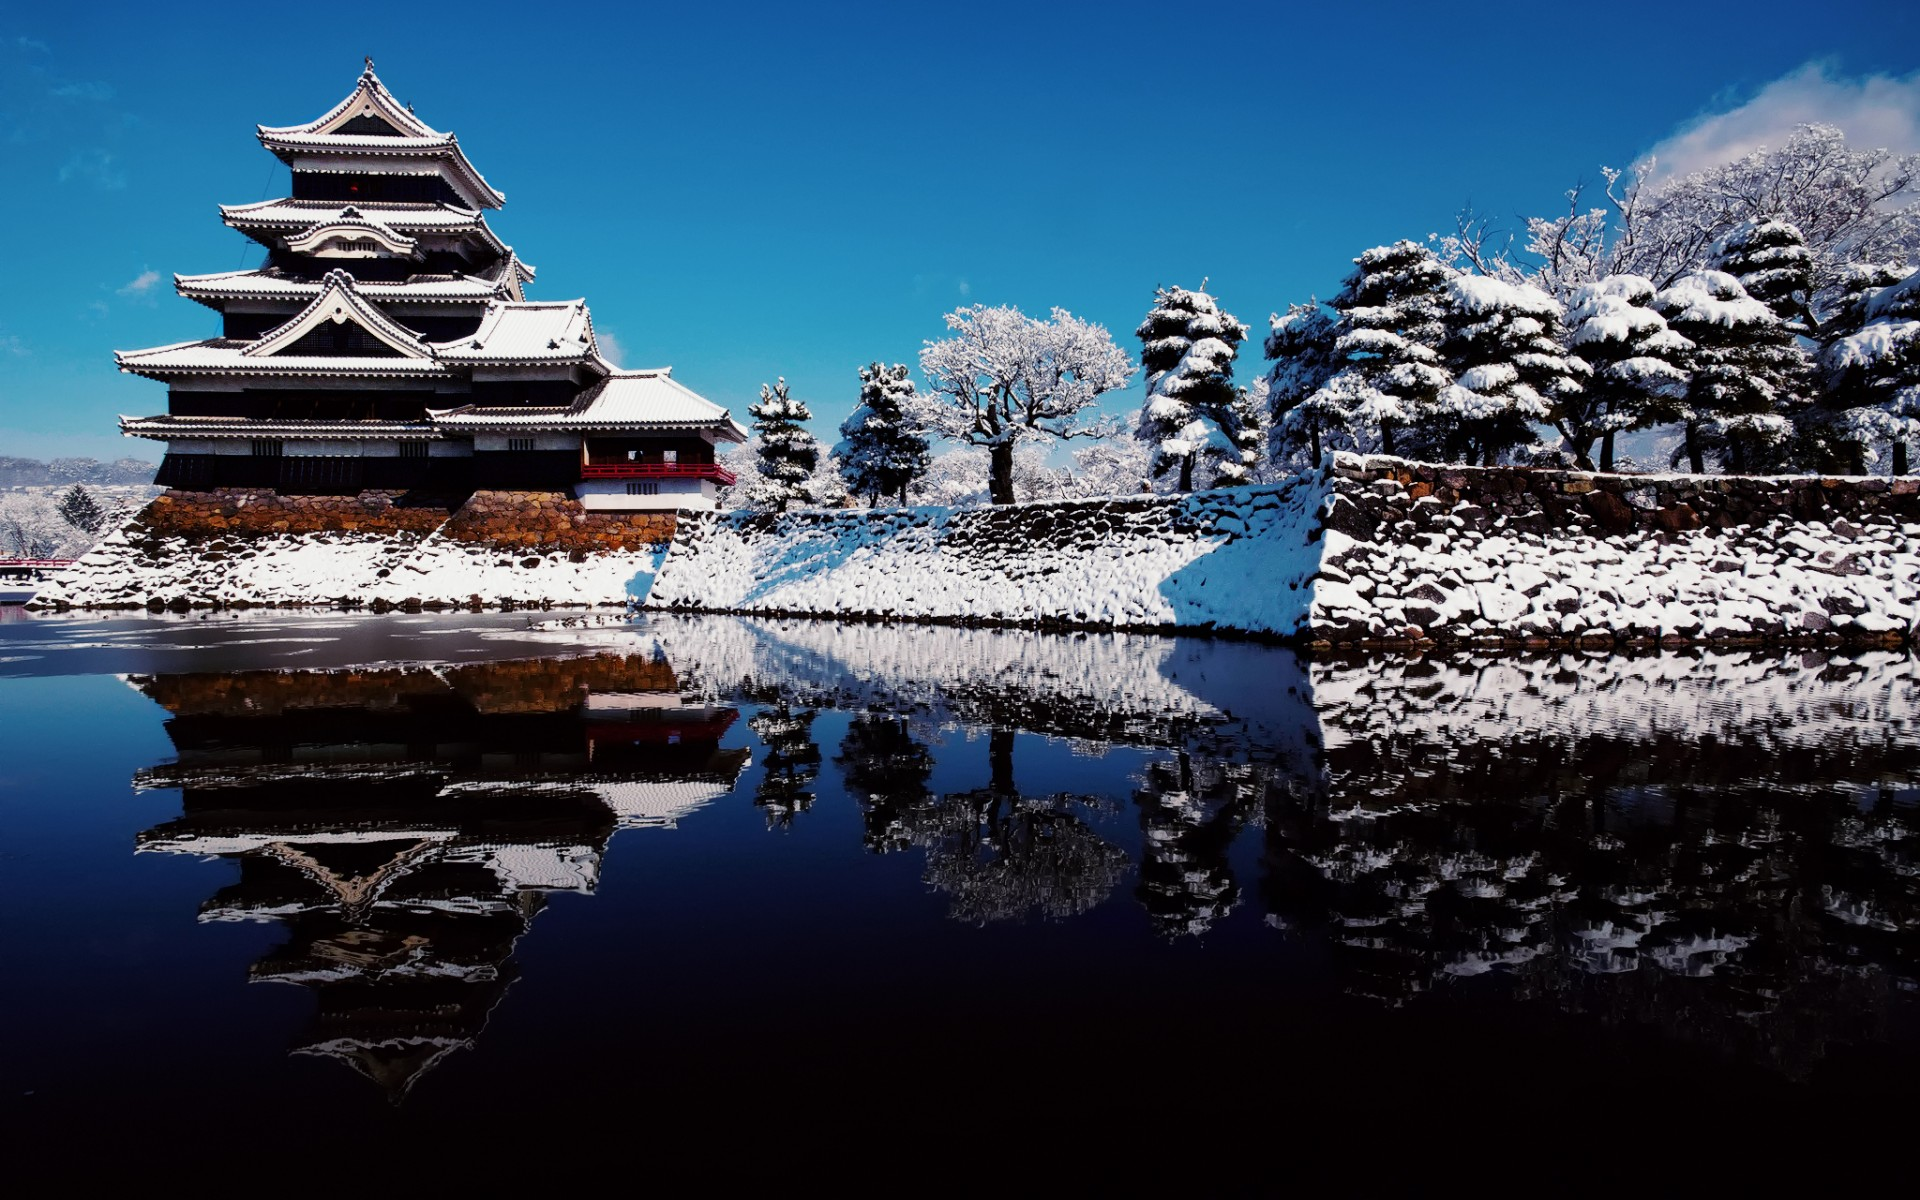 Matsumoto_Castle_raven_sky_water_reflection_winter_snow_japan_water_lakes_buildings_architecture_asian_oriental_1920x1200